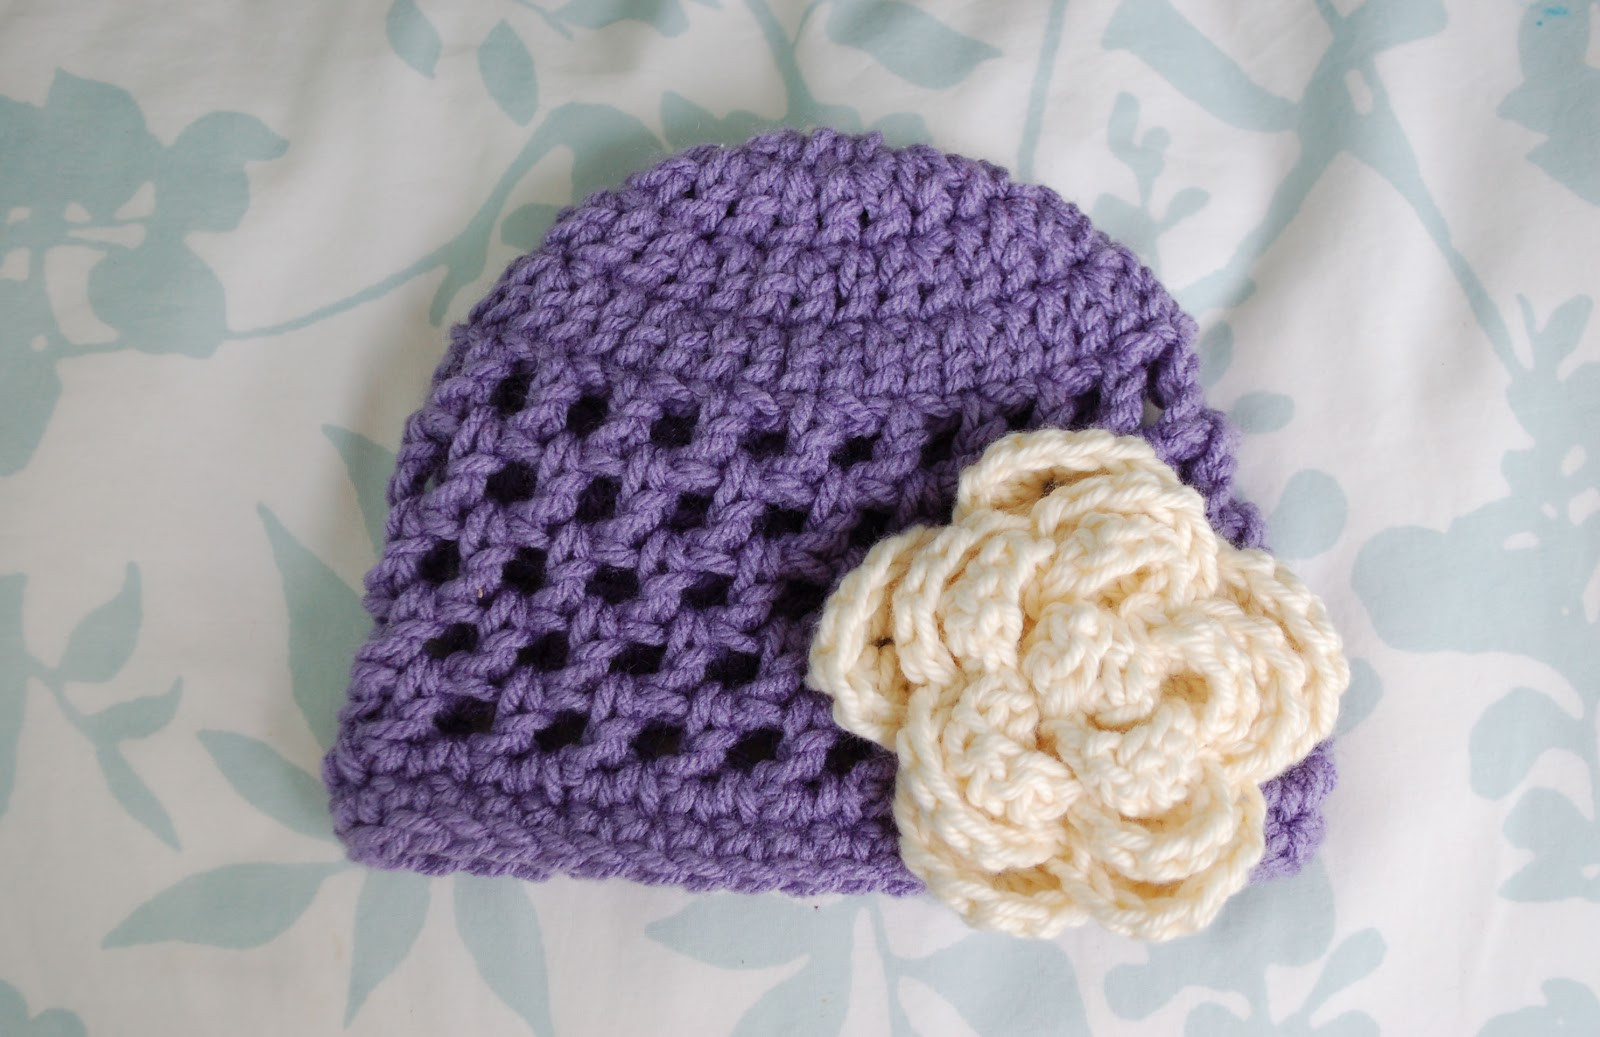 Best Of Alli Crafts Free Pattern Open Stitch Hat Newborn Free Crochet Infant Hat Patterns Of Luxury Baby Hat Crochet Pattern Modern Homemakers Free Crochet Infant Hat Patterns